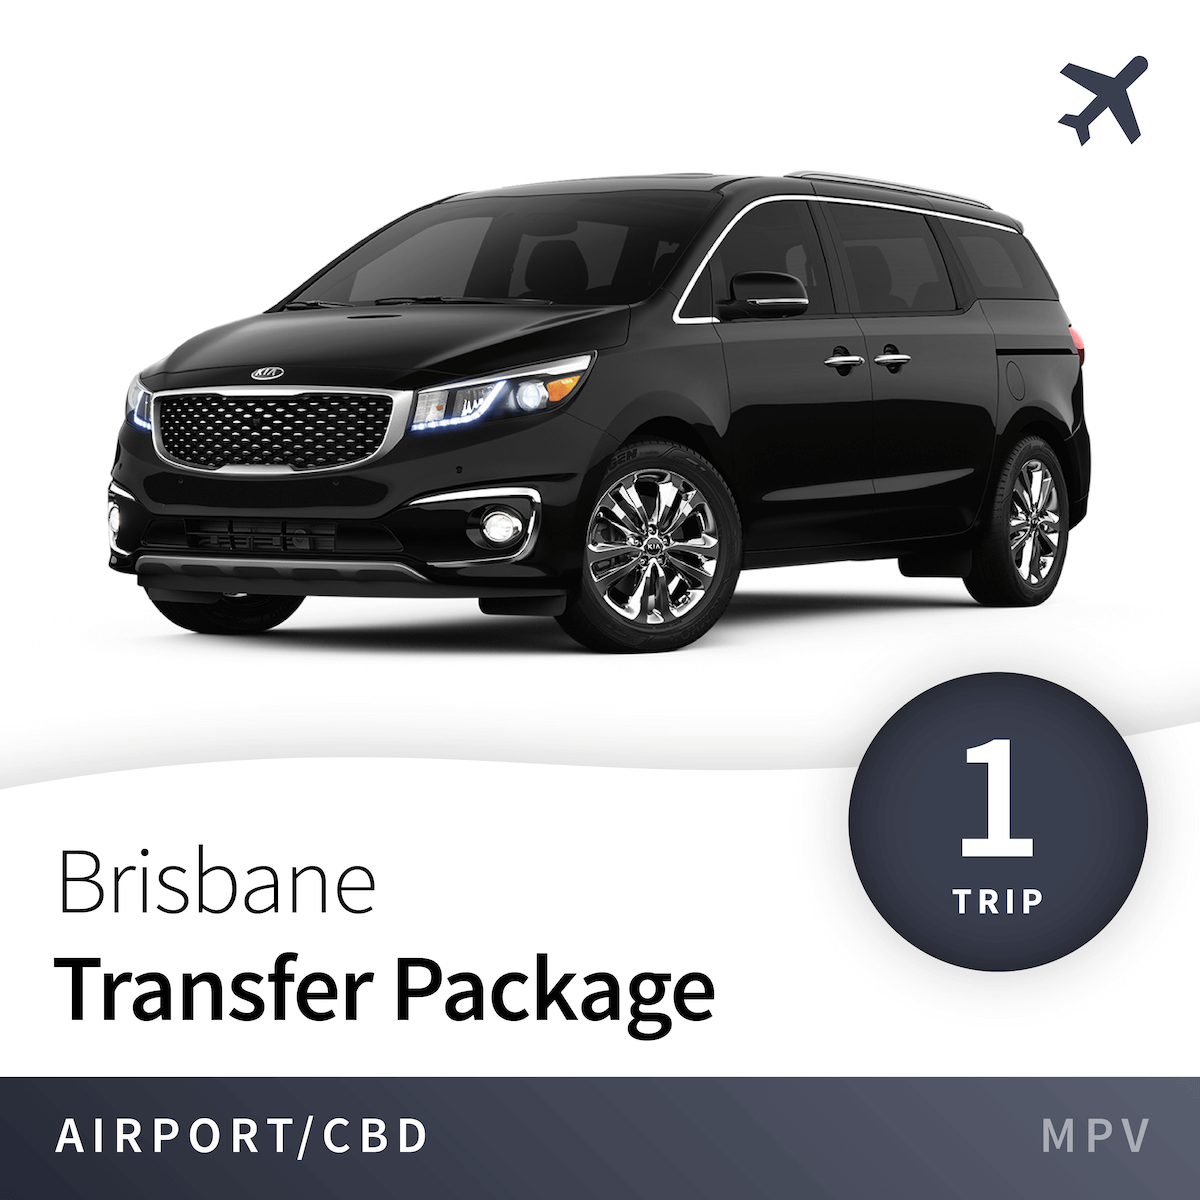 Brisbane Airport Transfer Package - MPV (1 Trip) 10